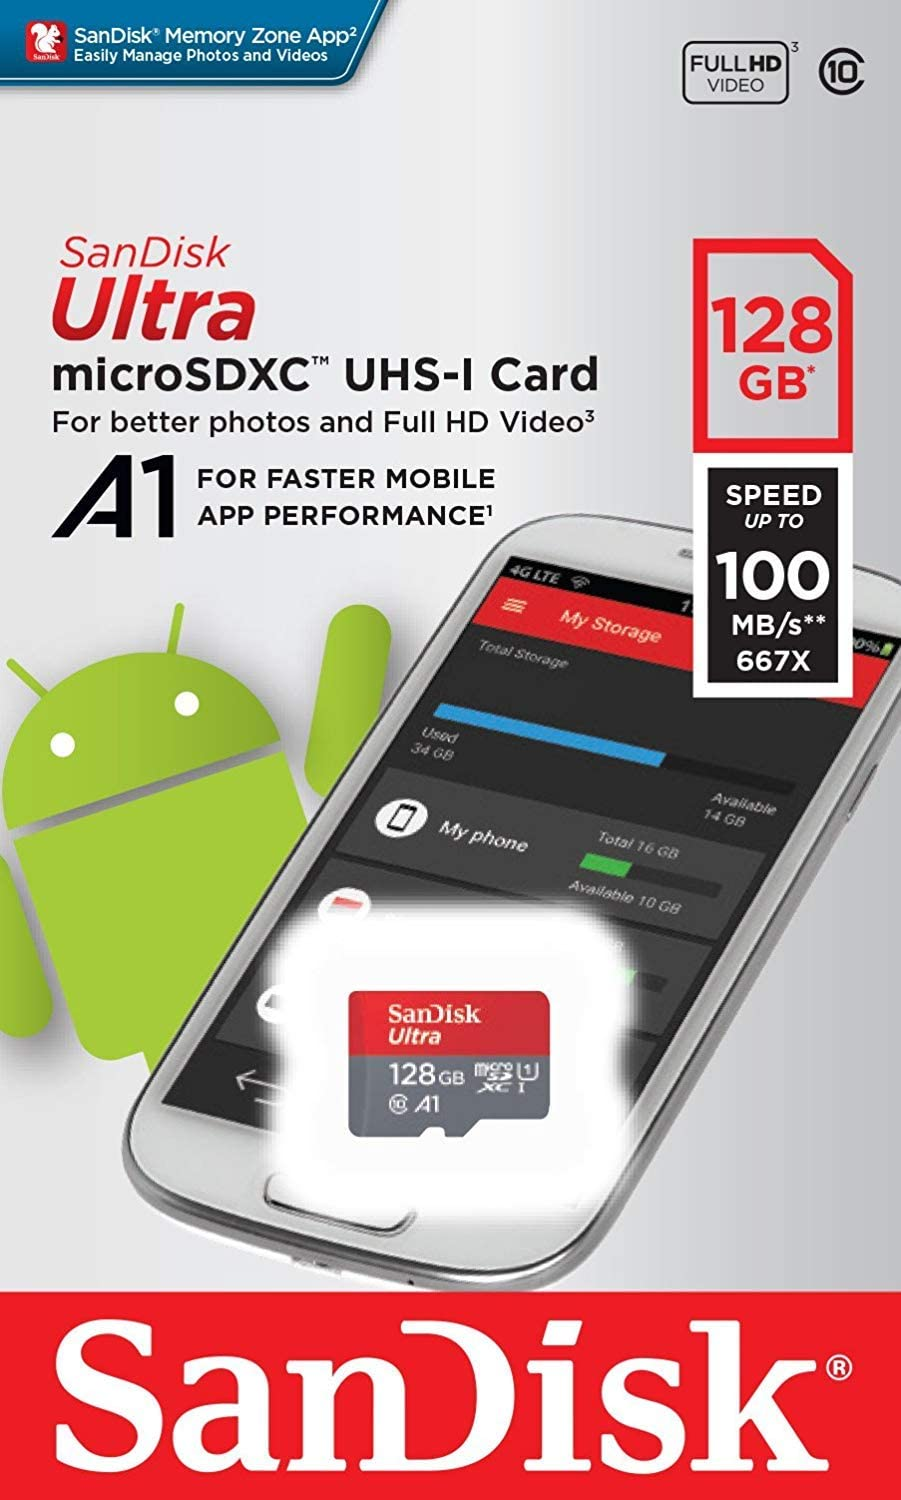 SanDisk Ultra 128GB MicroSDXC Verified for Huawei BAH2-L09 by SanFlash 100MBs A1 U1 Works with SanDisk